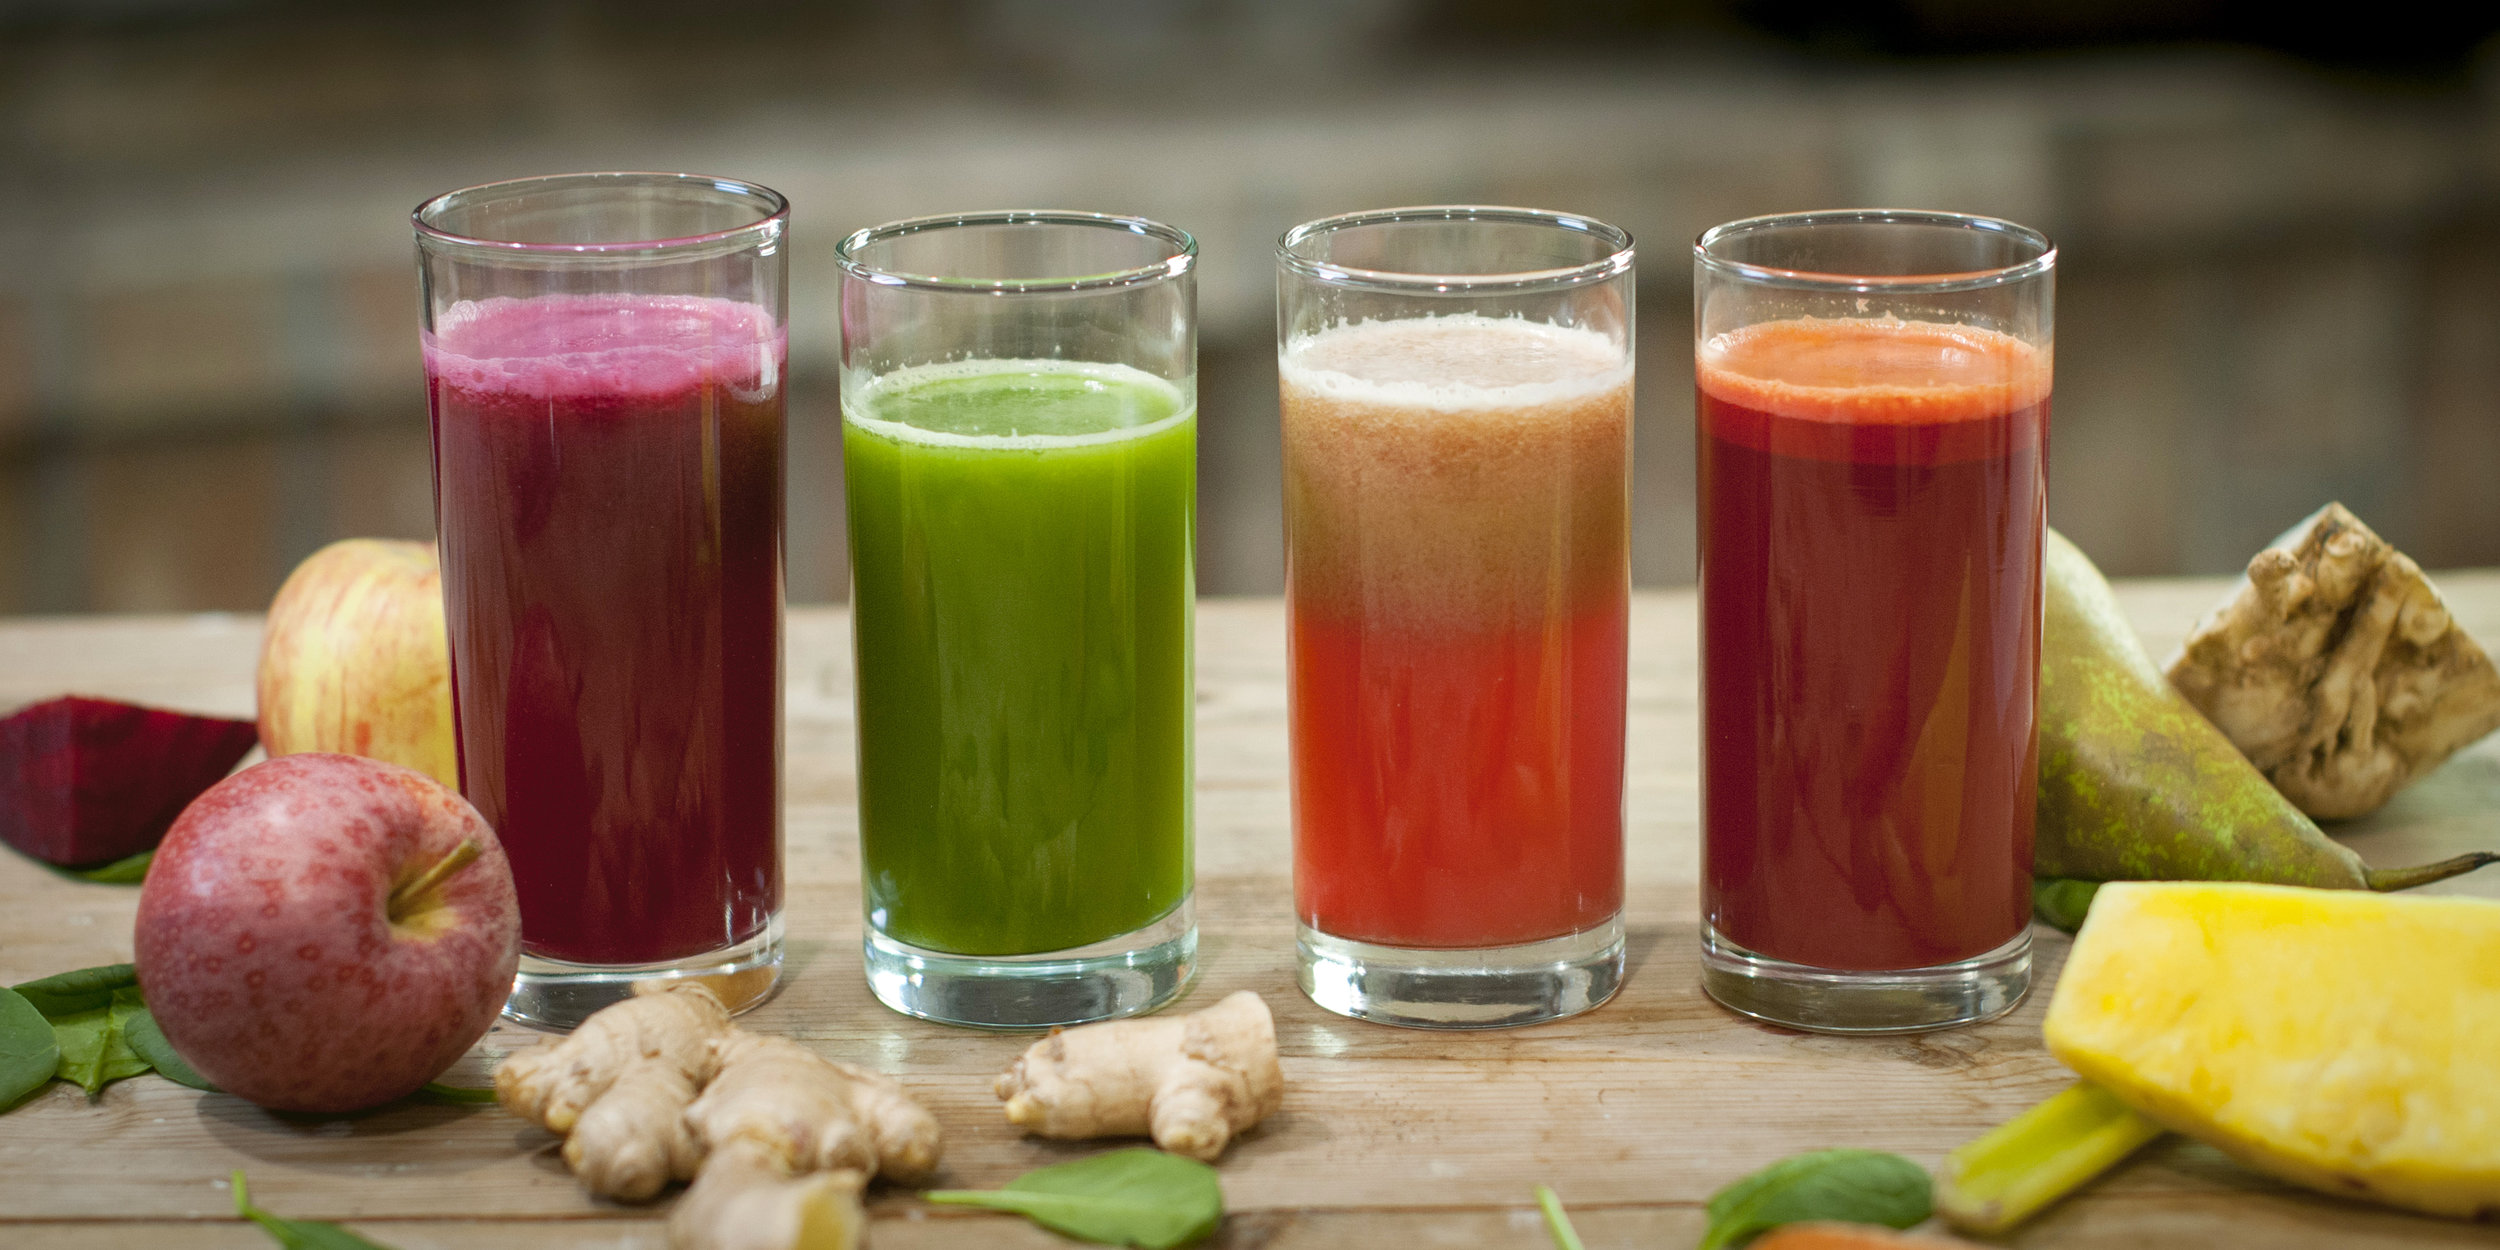 smoothies 2 2x1 foto Lise von Krogh.jpg